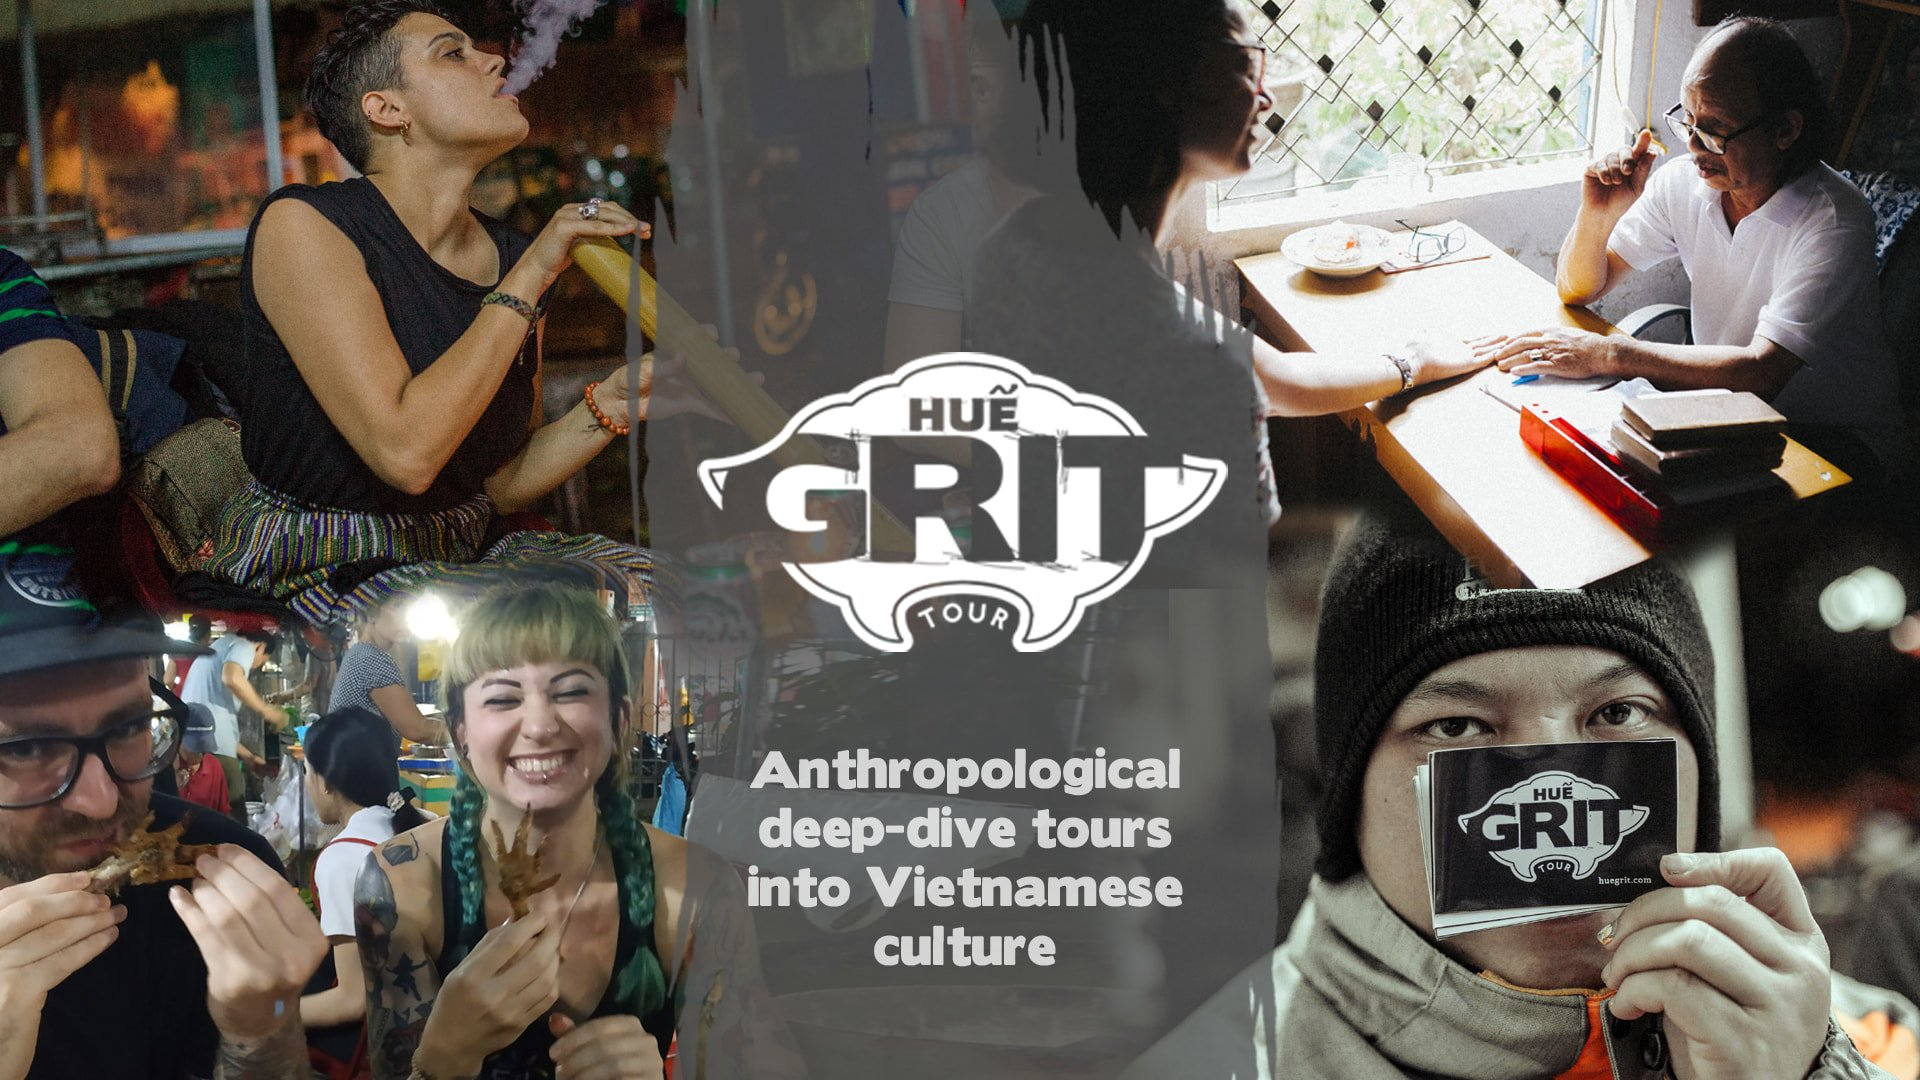 Hue Grit Tour. Anthropological deep=dive tours into Vietnamese culture